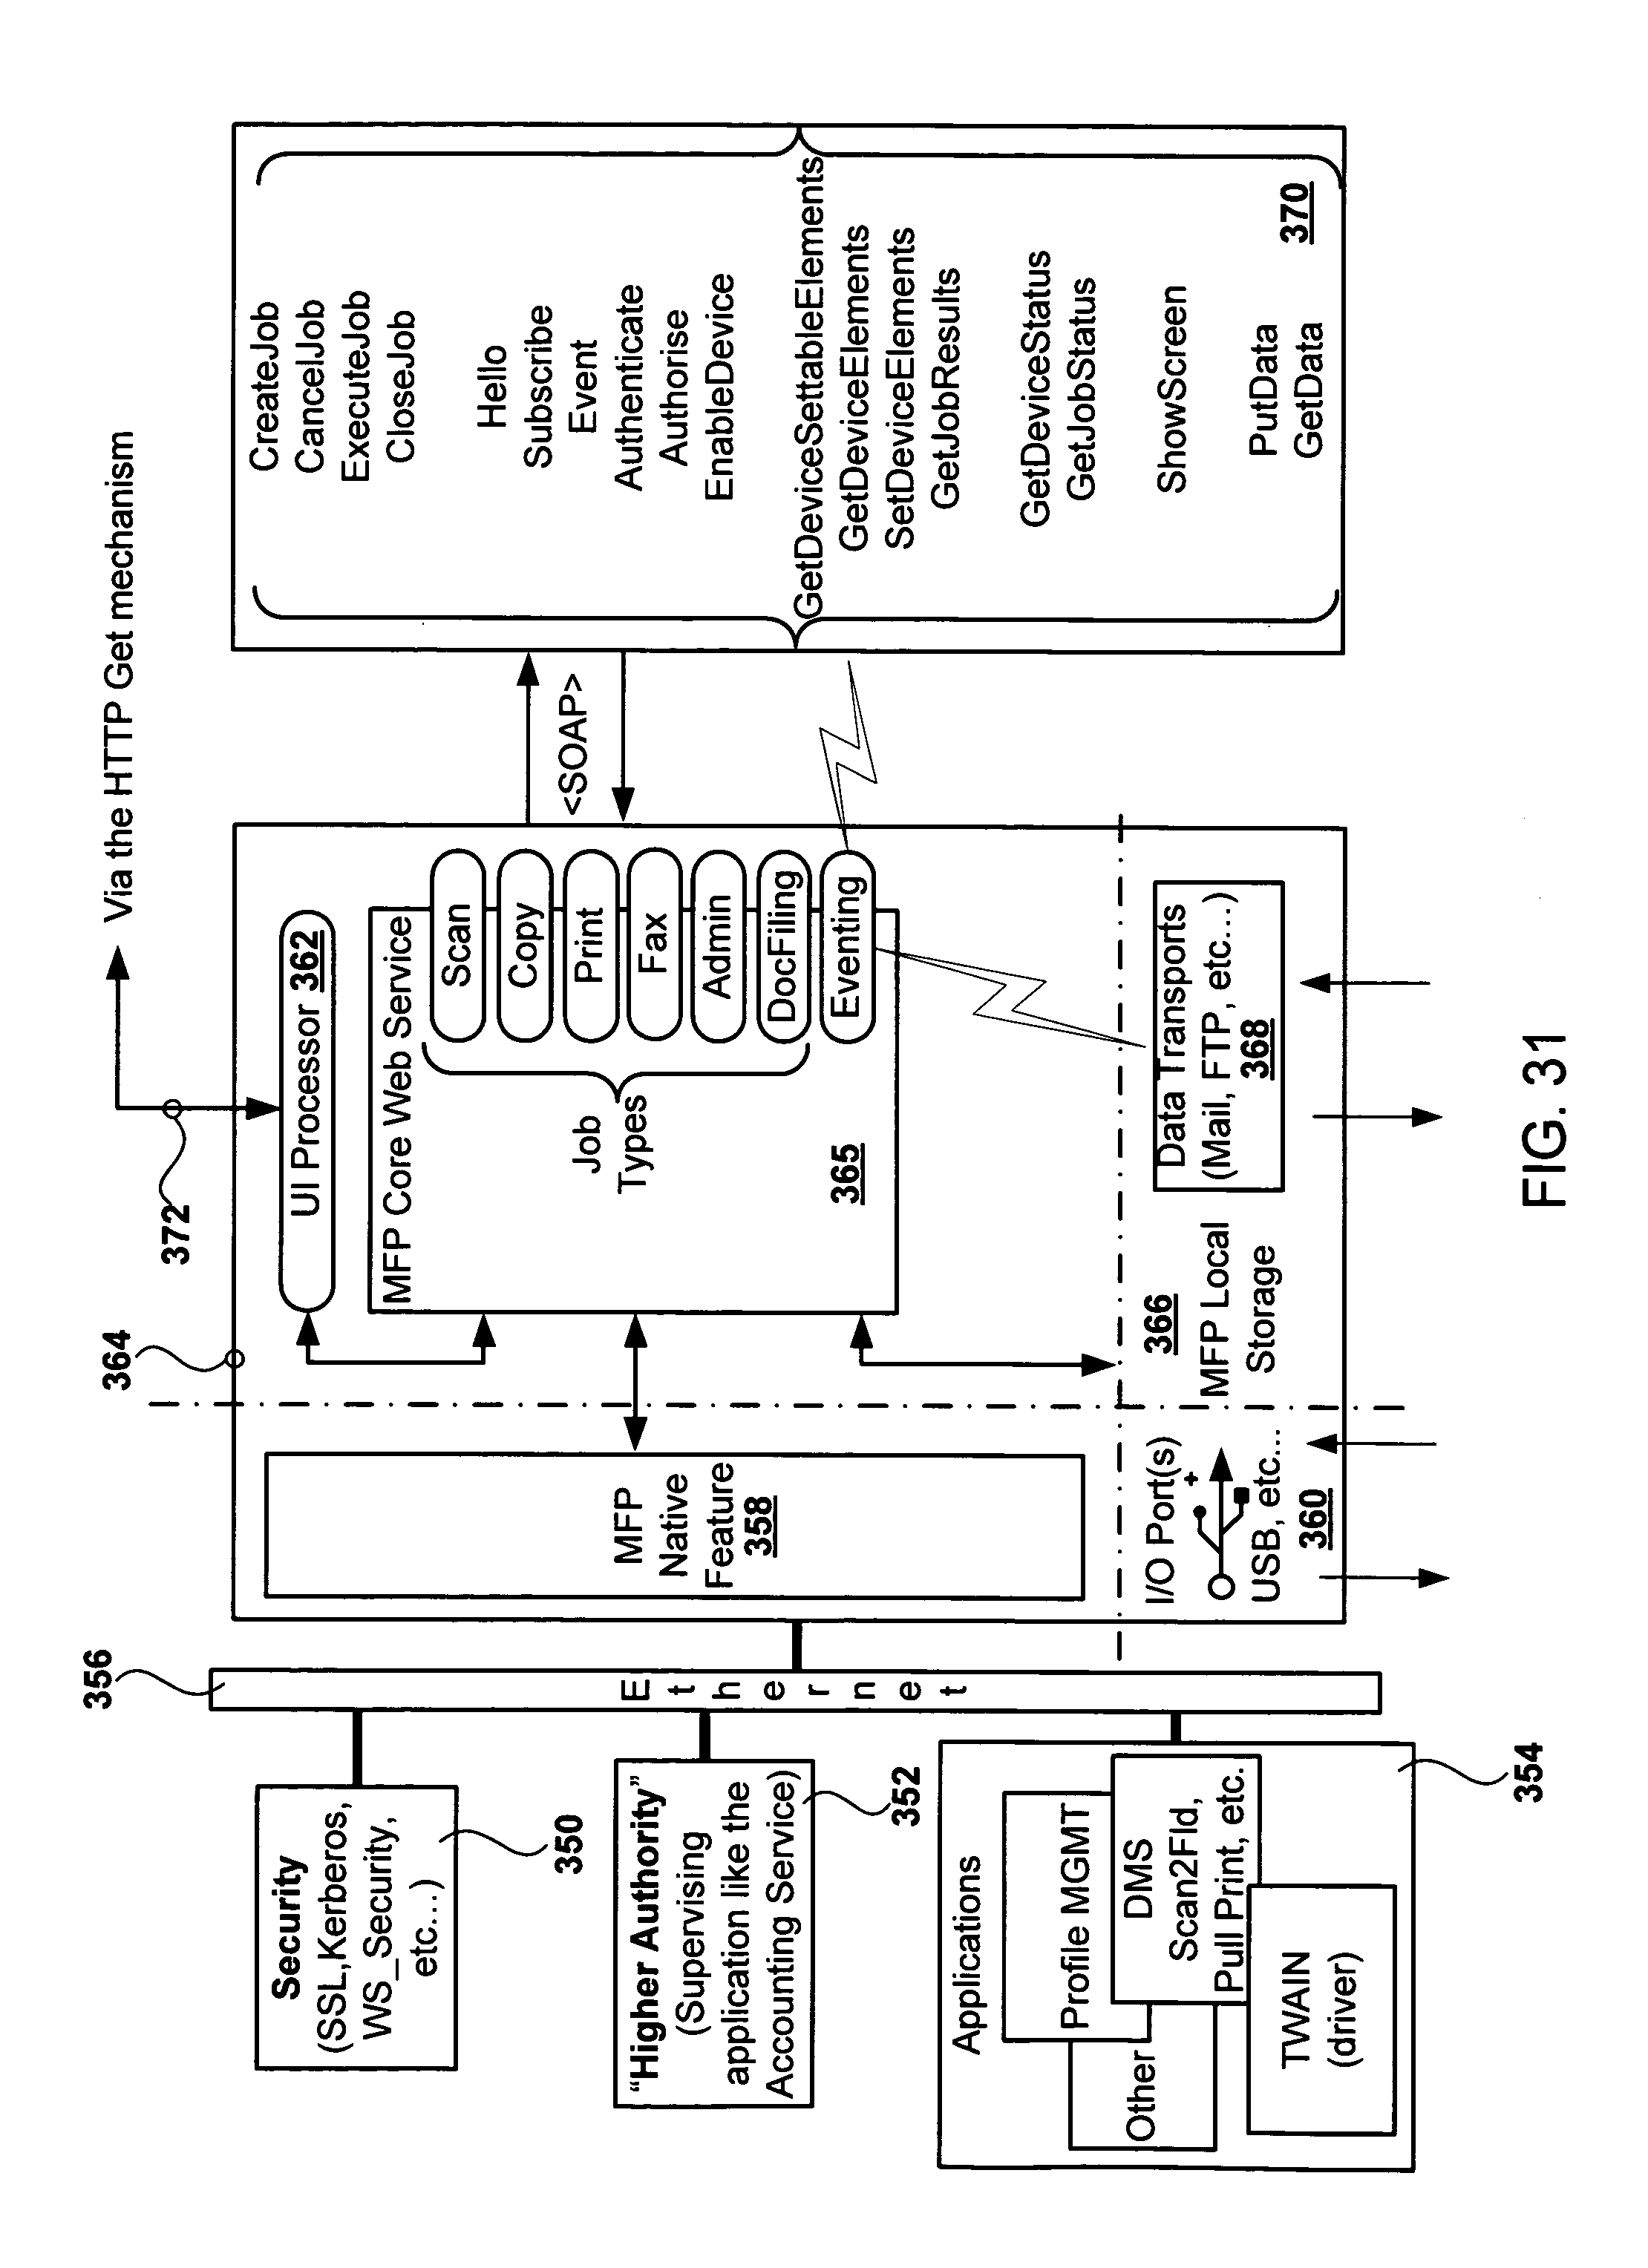 Patent Us 8032608 B2 Well Autocad Electrical Wiring Diagram On Hand Off Auto Motor 0 Petitions